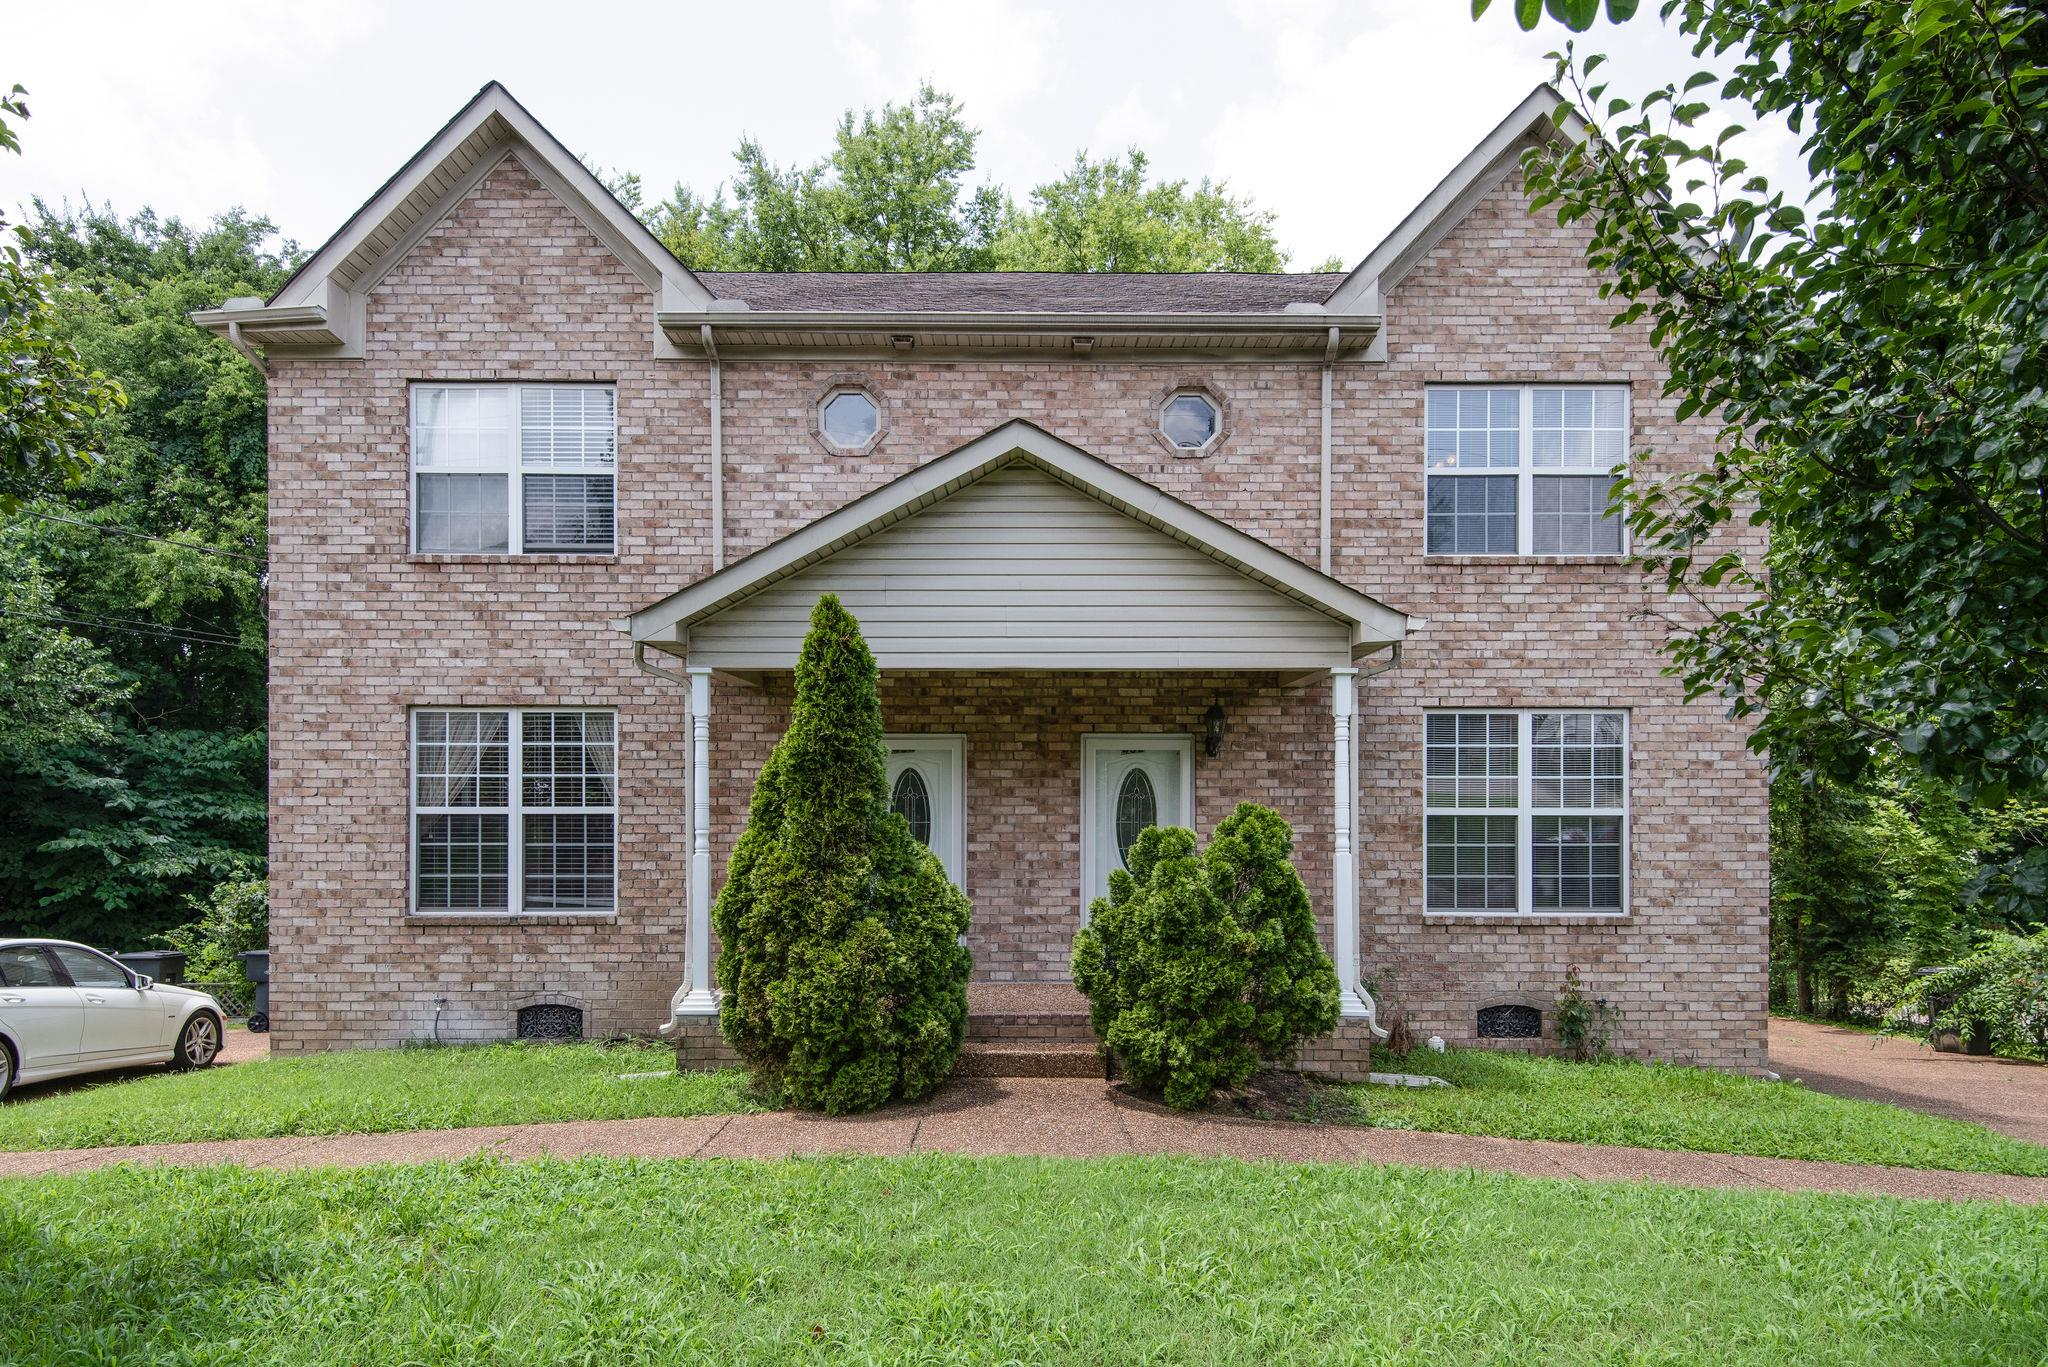 434 Carl Miller Dr, Nashville-Antioch in Davidson County County, TN 37013 Home for Sale